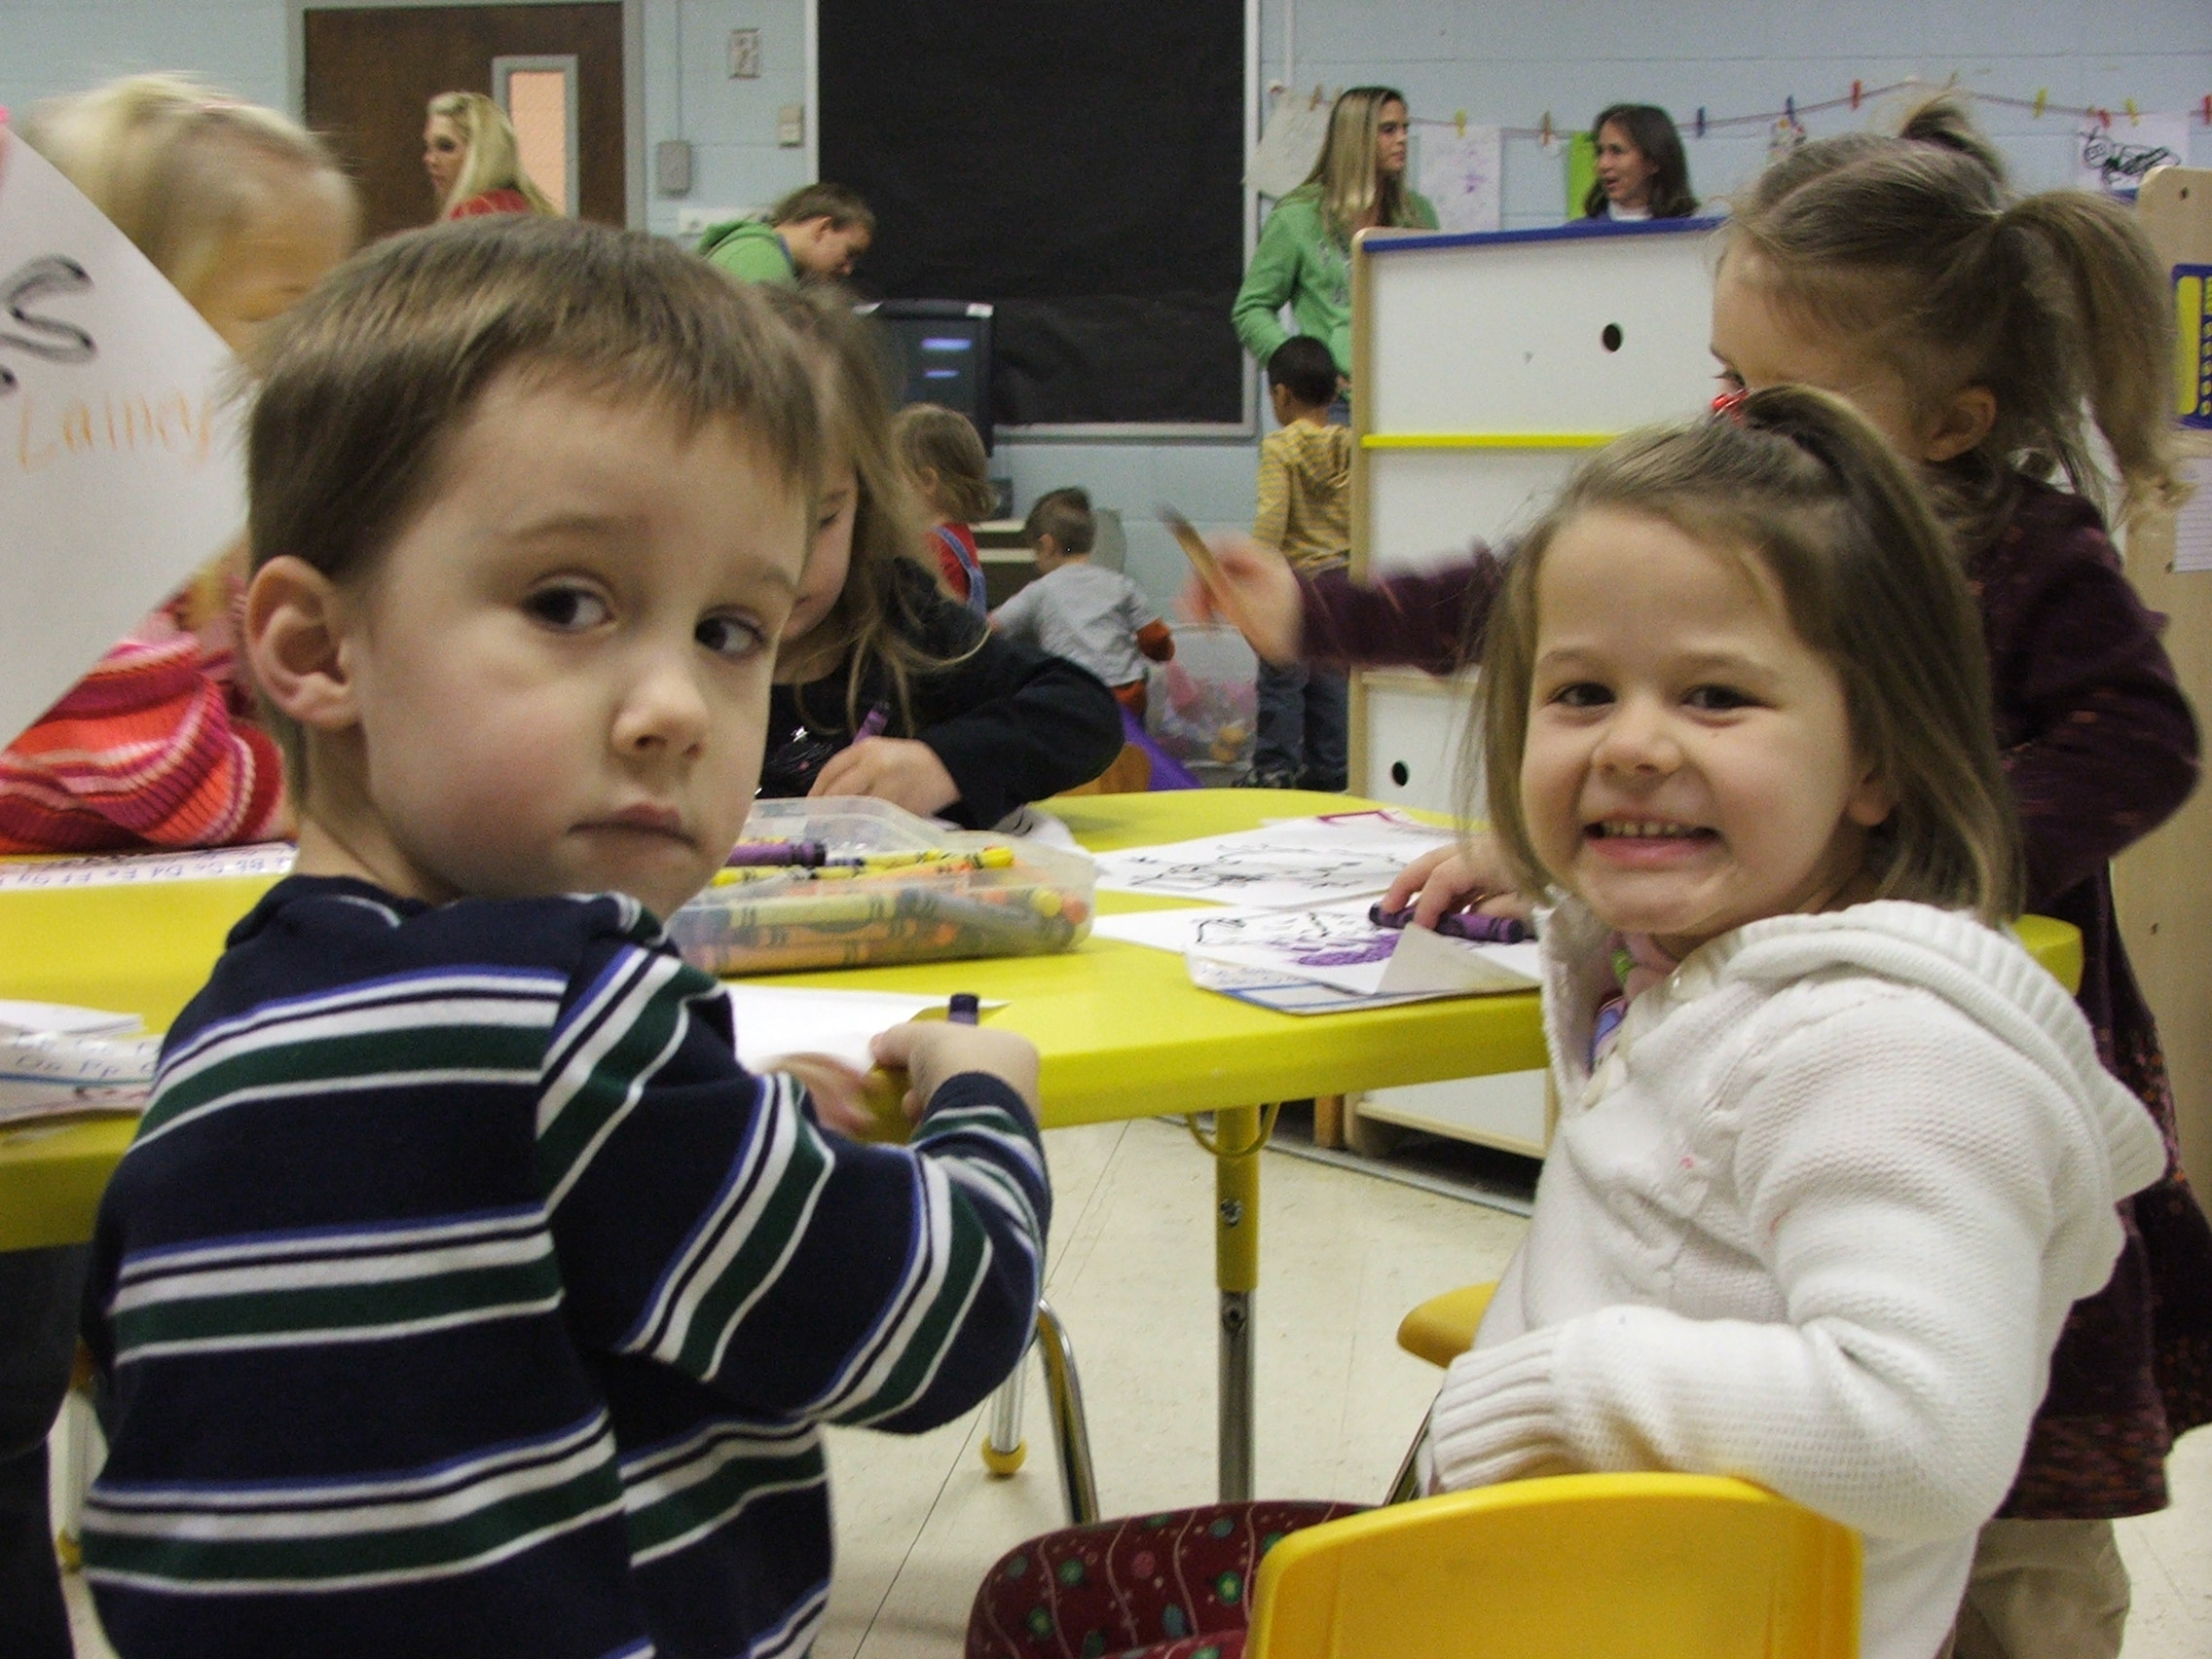 Christmas party with his ward friends (Hailey shown). Emma is in the background.